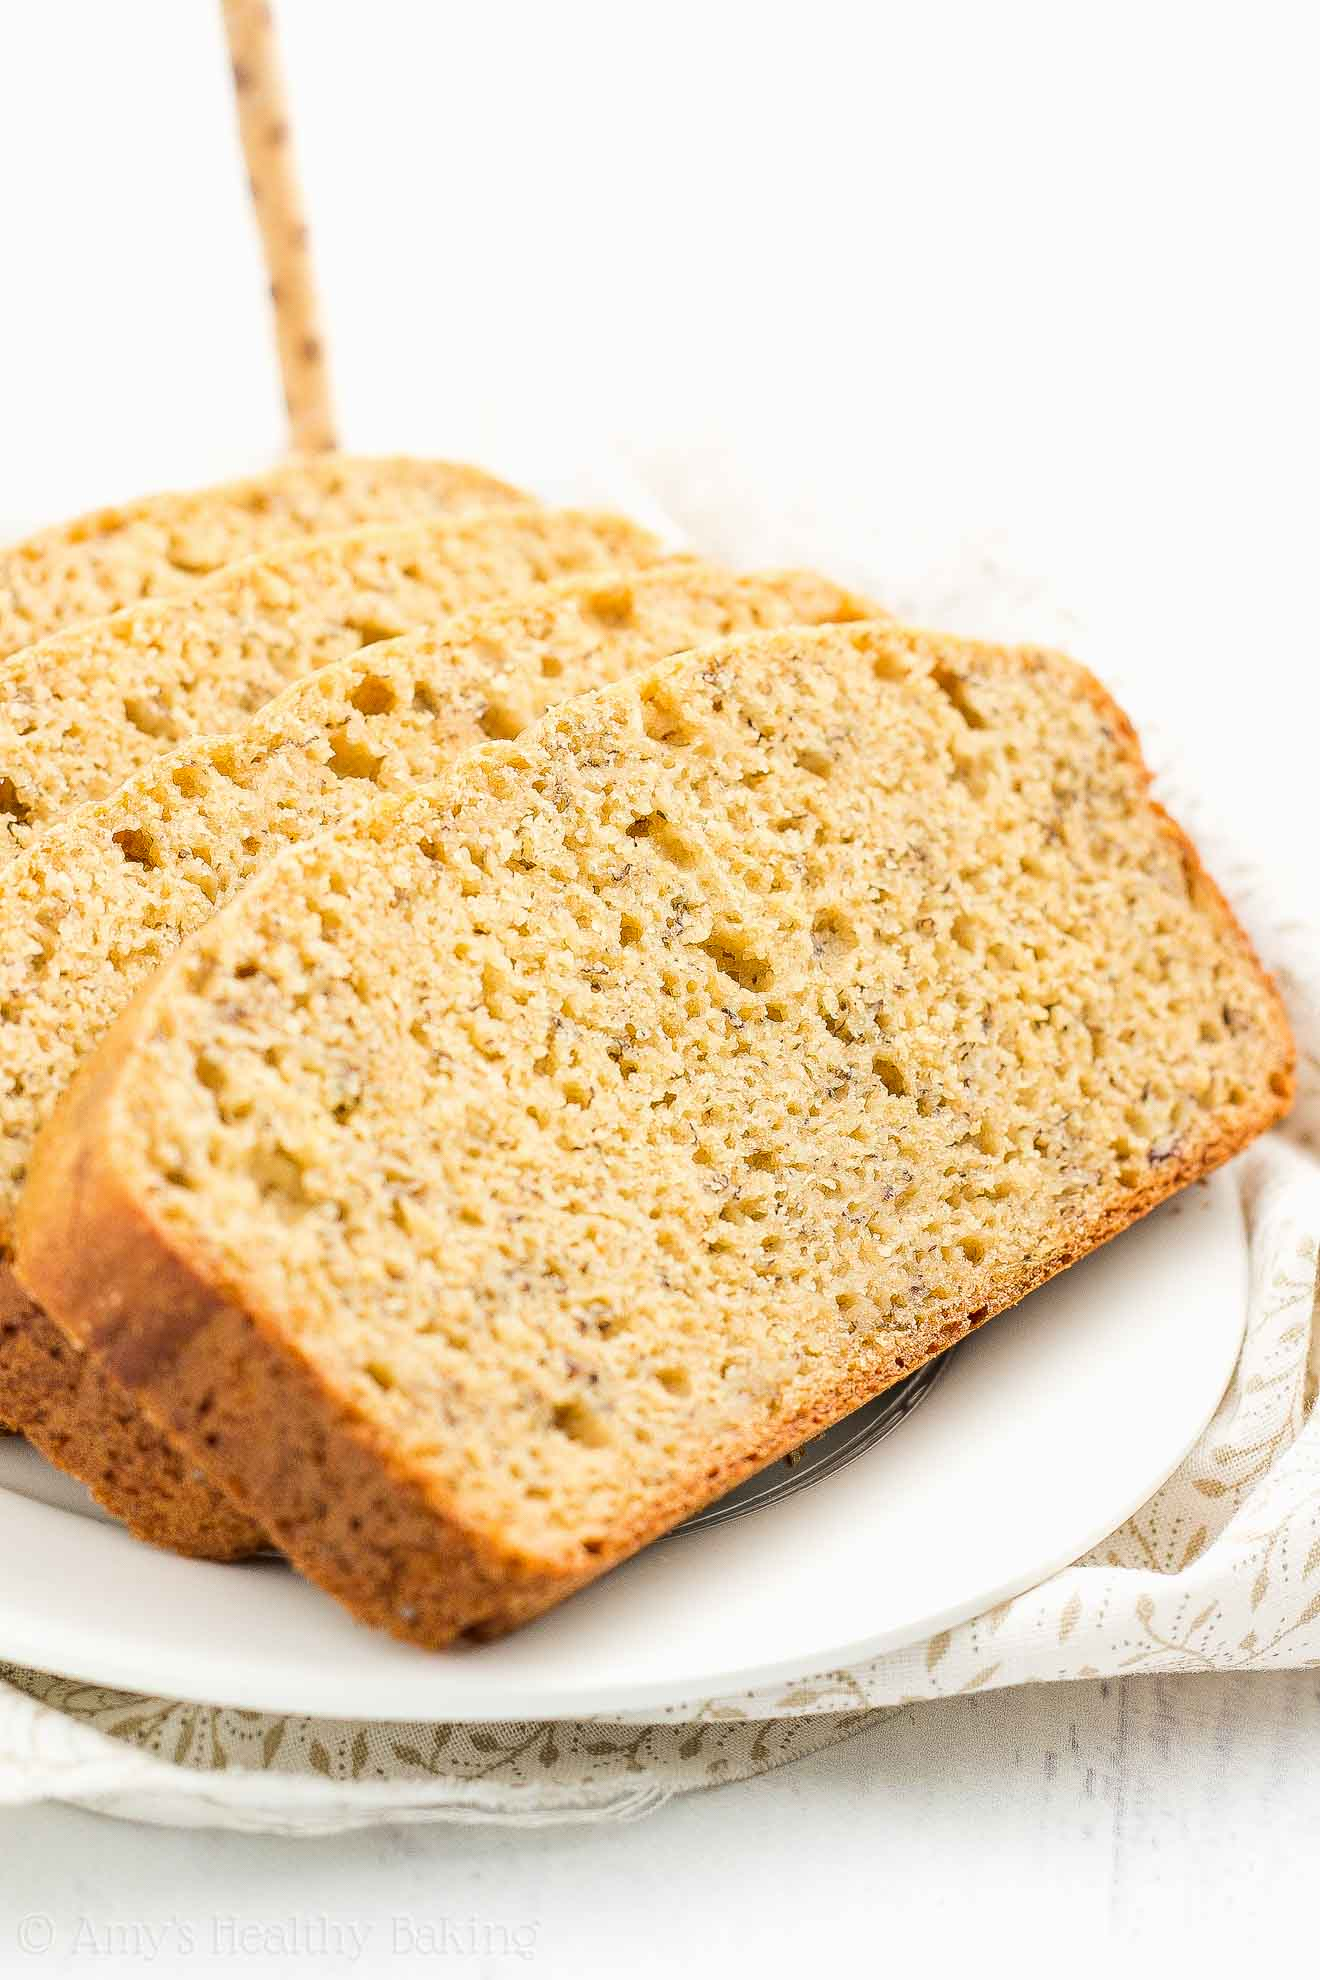 Slices of the ULTIMATE Healthy Banana Bread, made with Greek yogurt and really tender